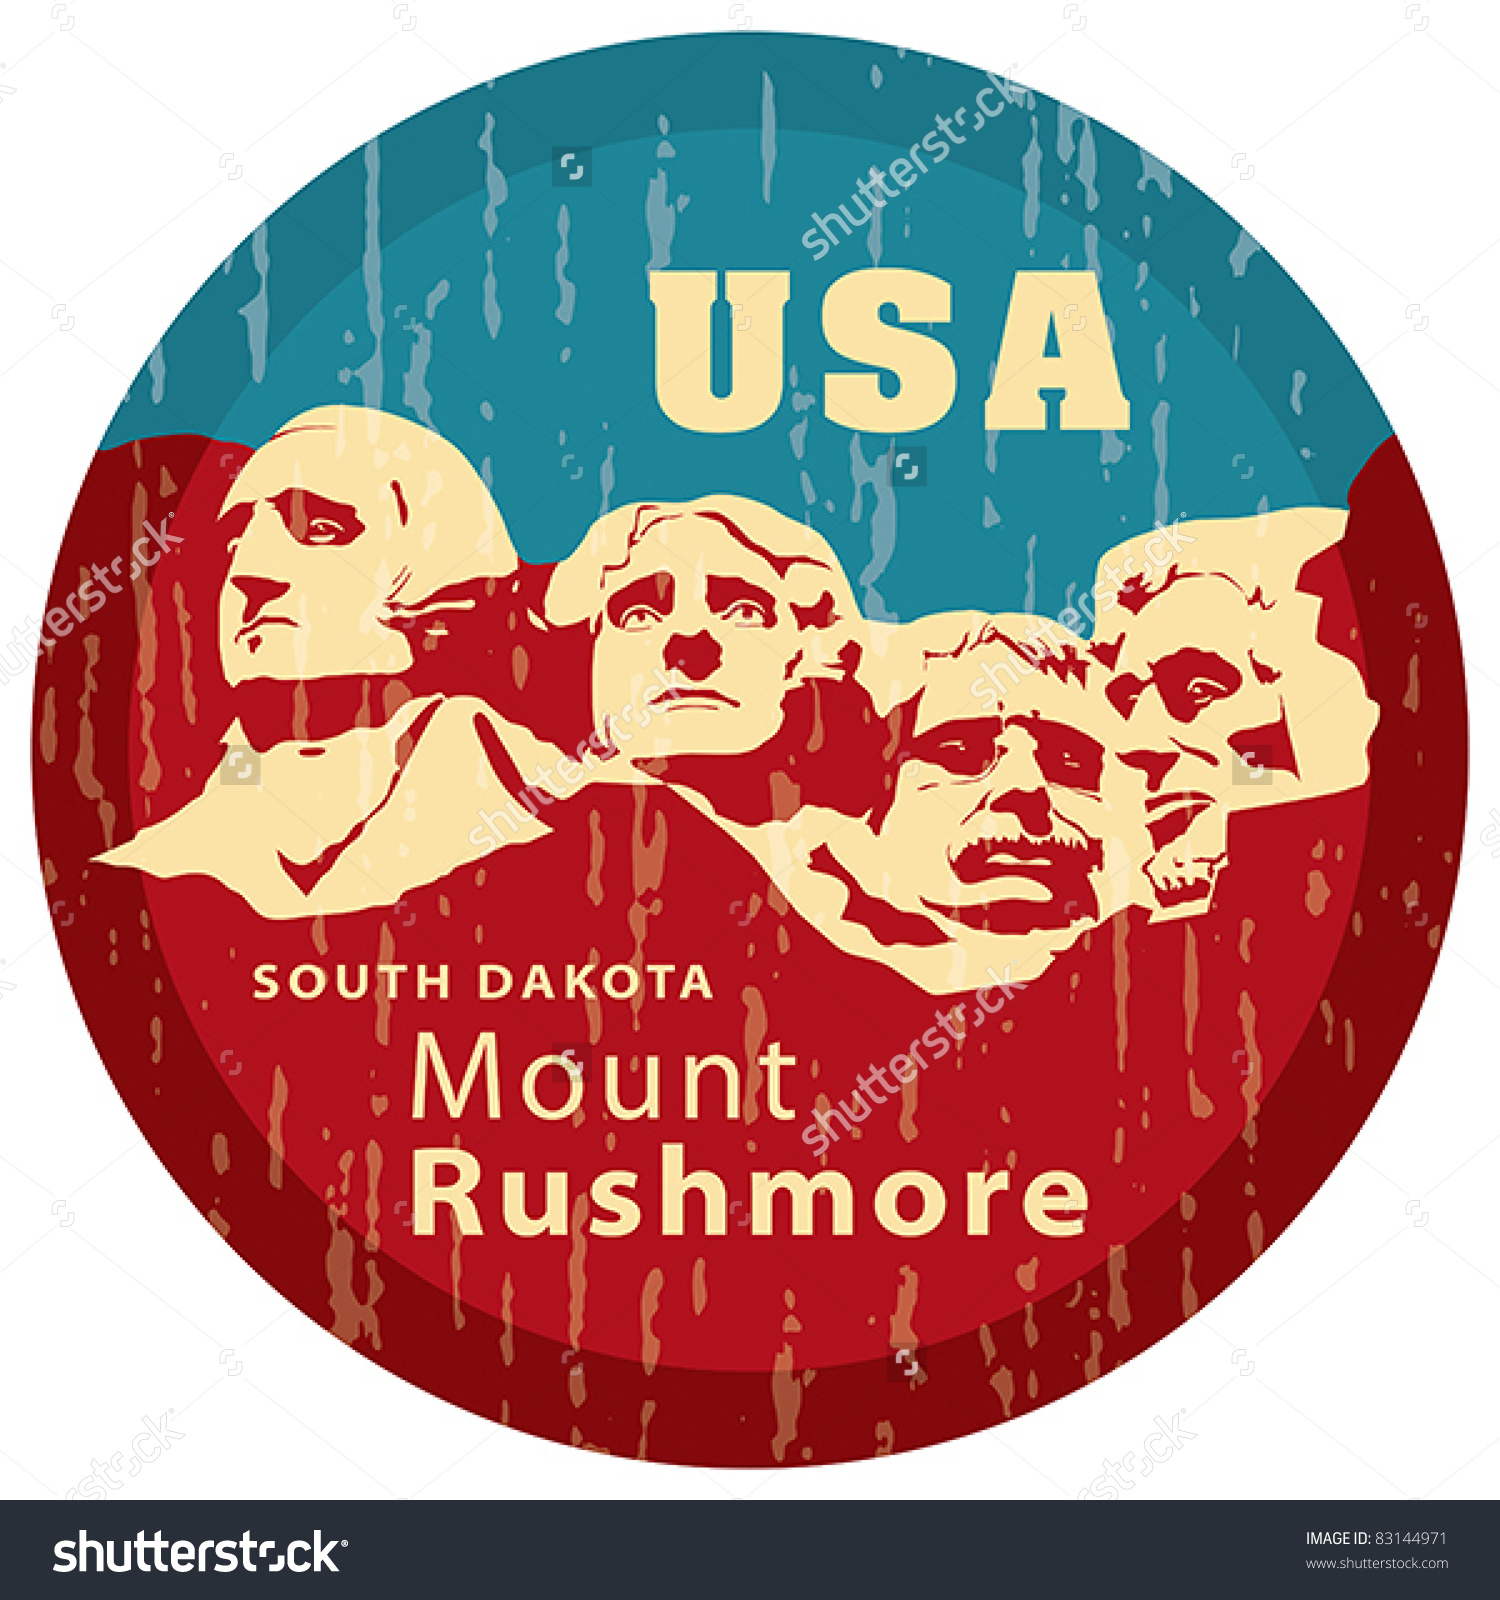 Mount Rushmore National Memorial Eps 8 Stock Vector 83144971.